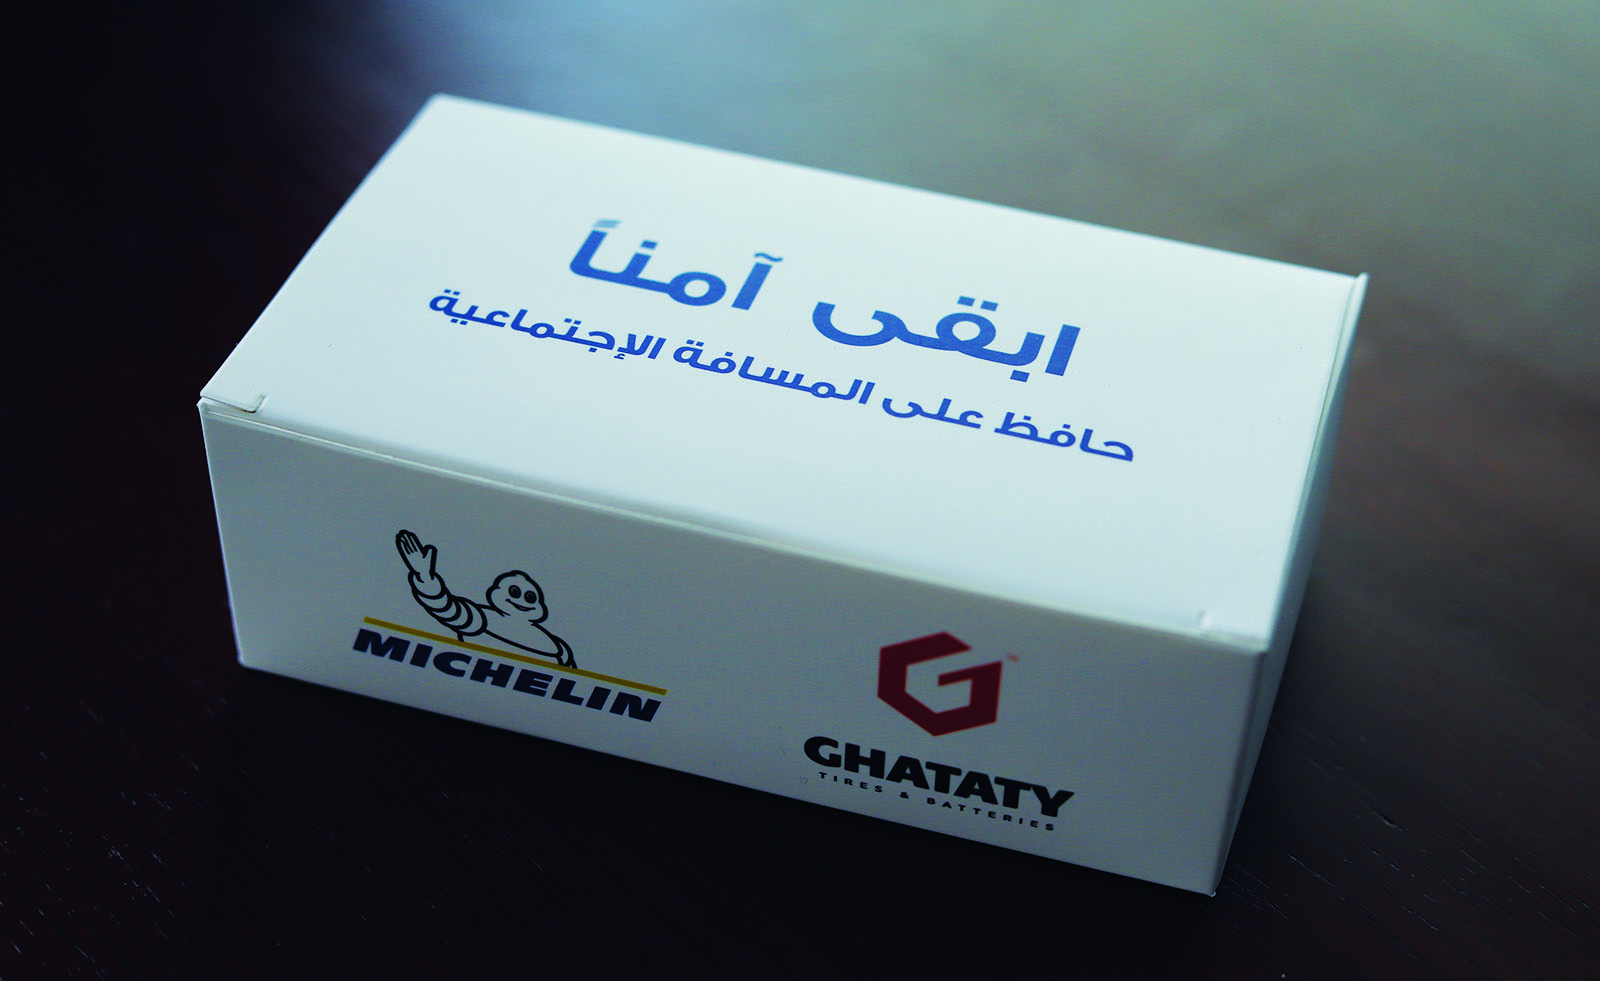 Ghataty and Michilen Launch a Campaign to Raise Awareness Against COVID-19 in Egypt